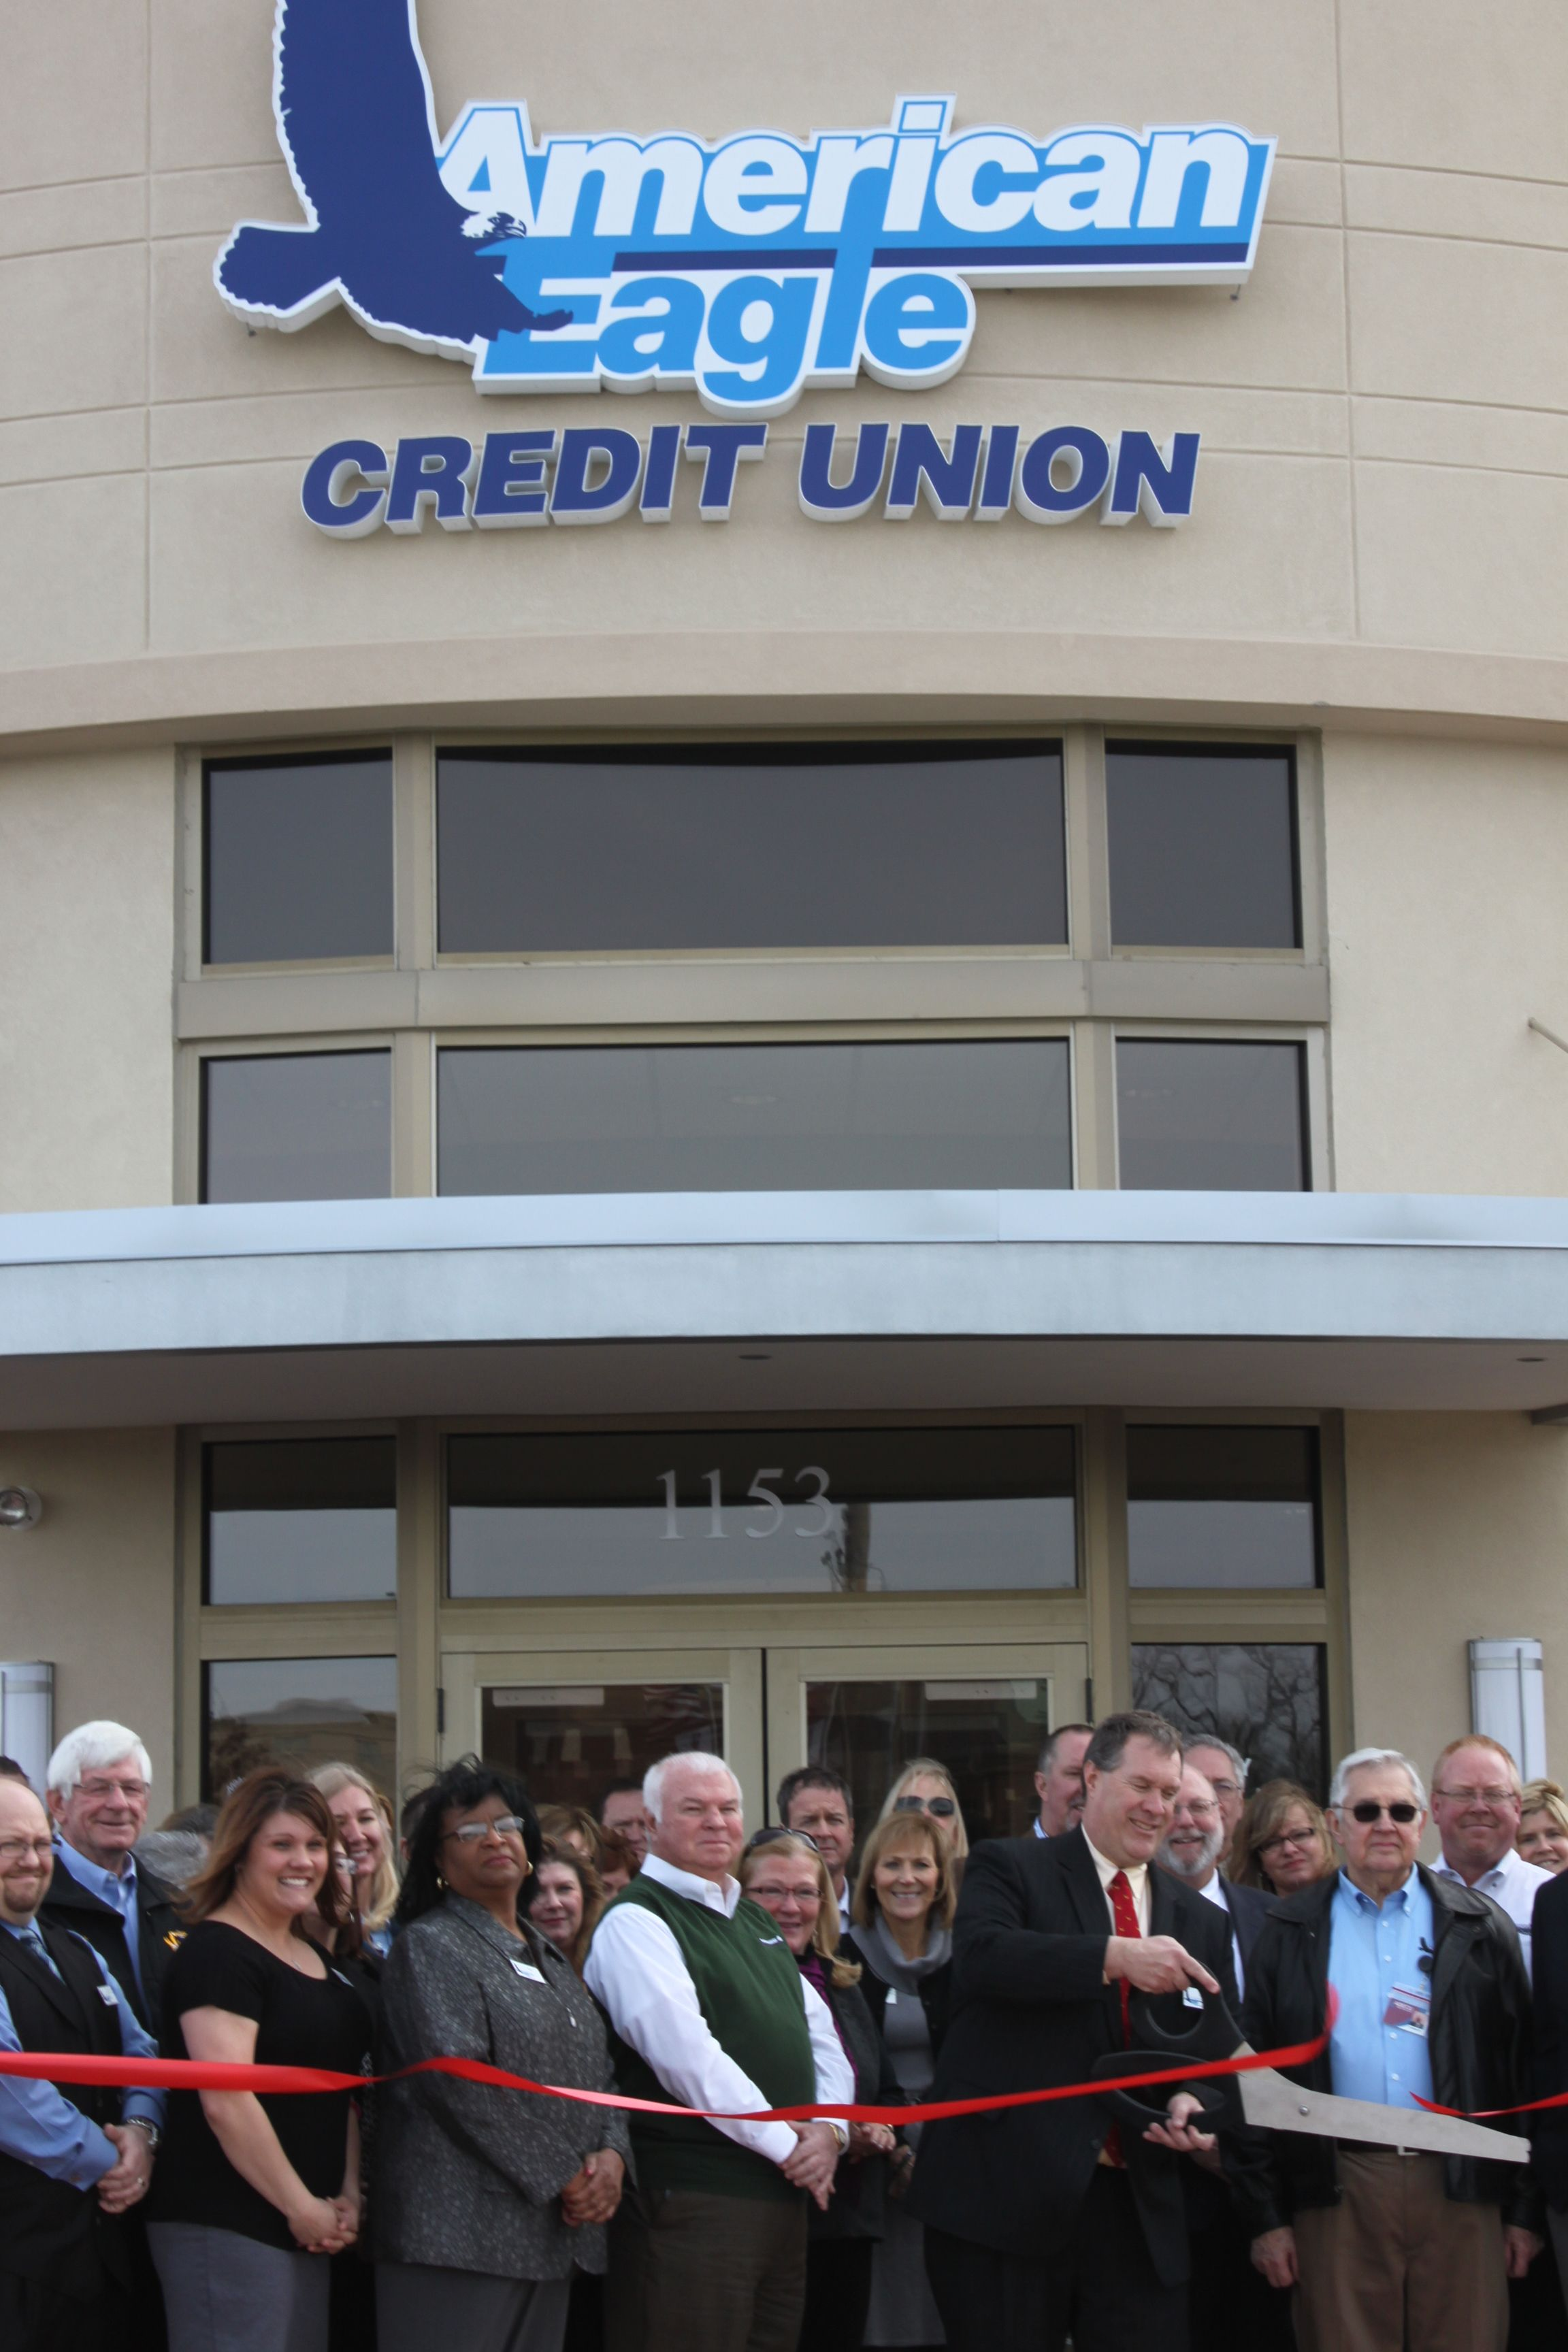 Press News Releases Shiloh Credit Union Grand Opening